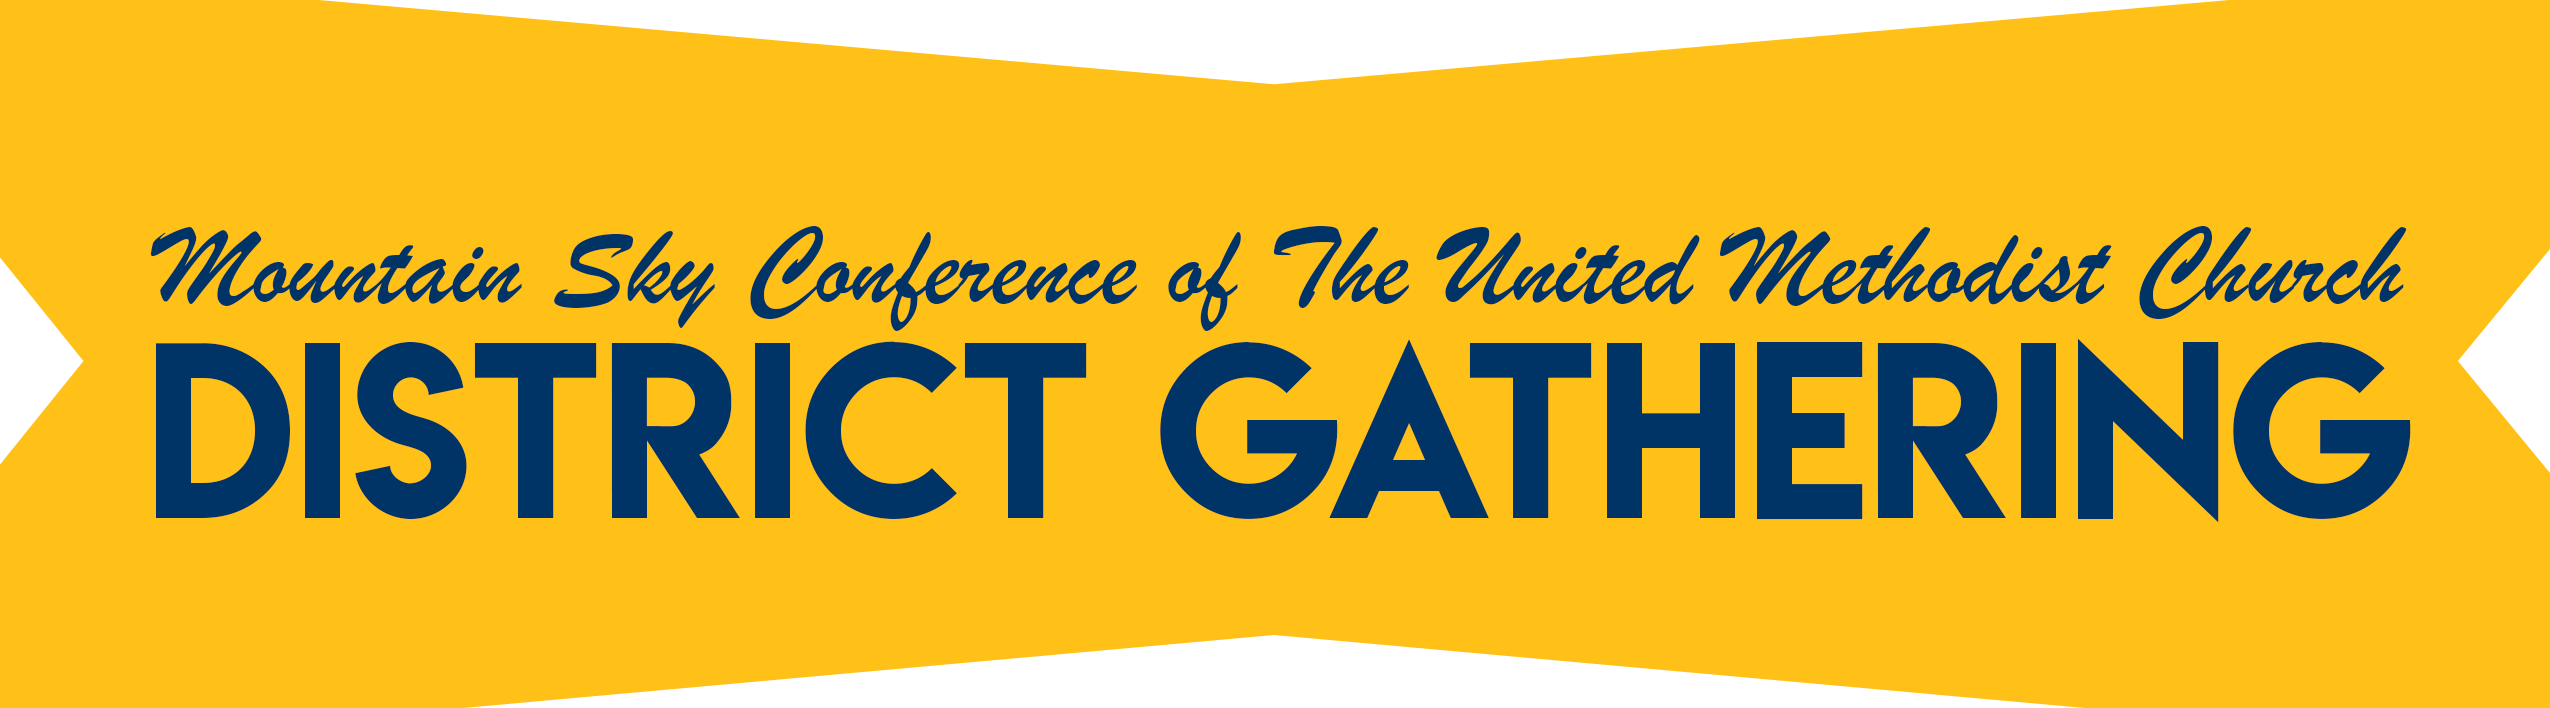 District Gathering banner